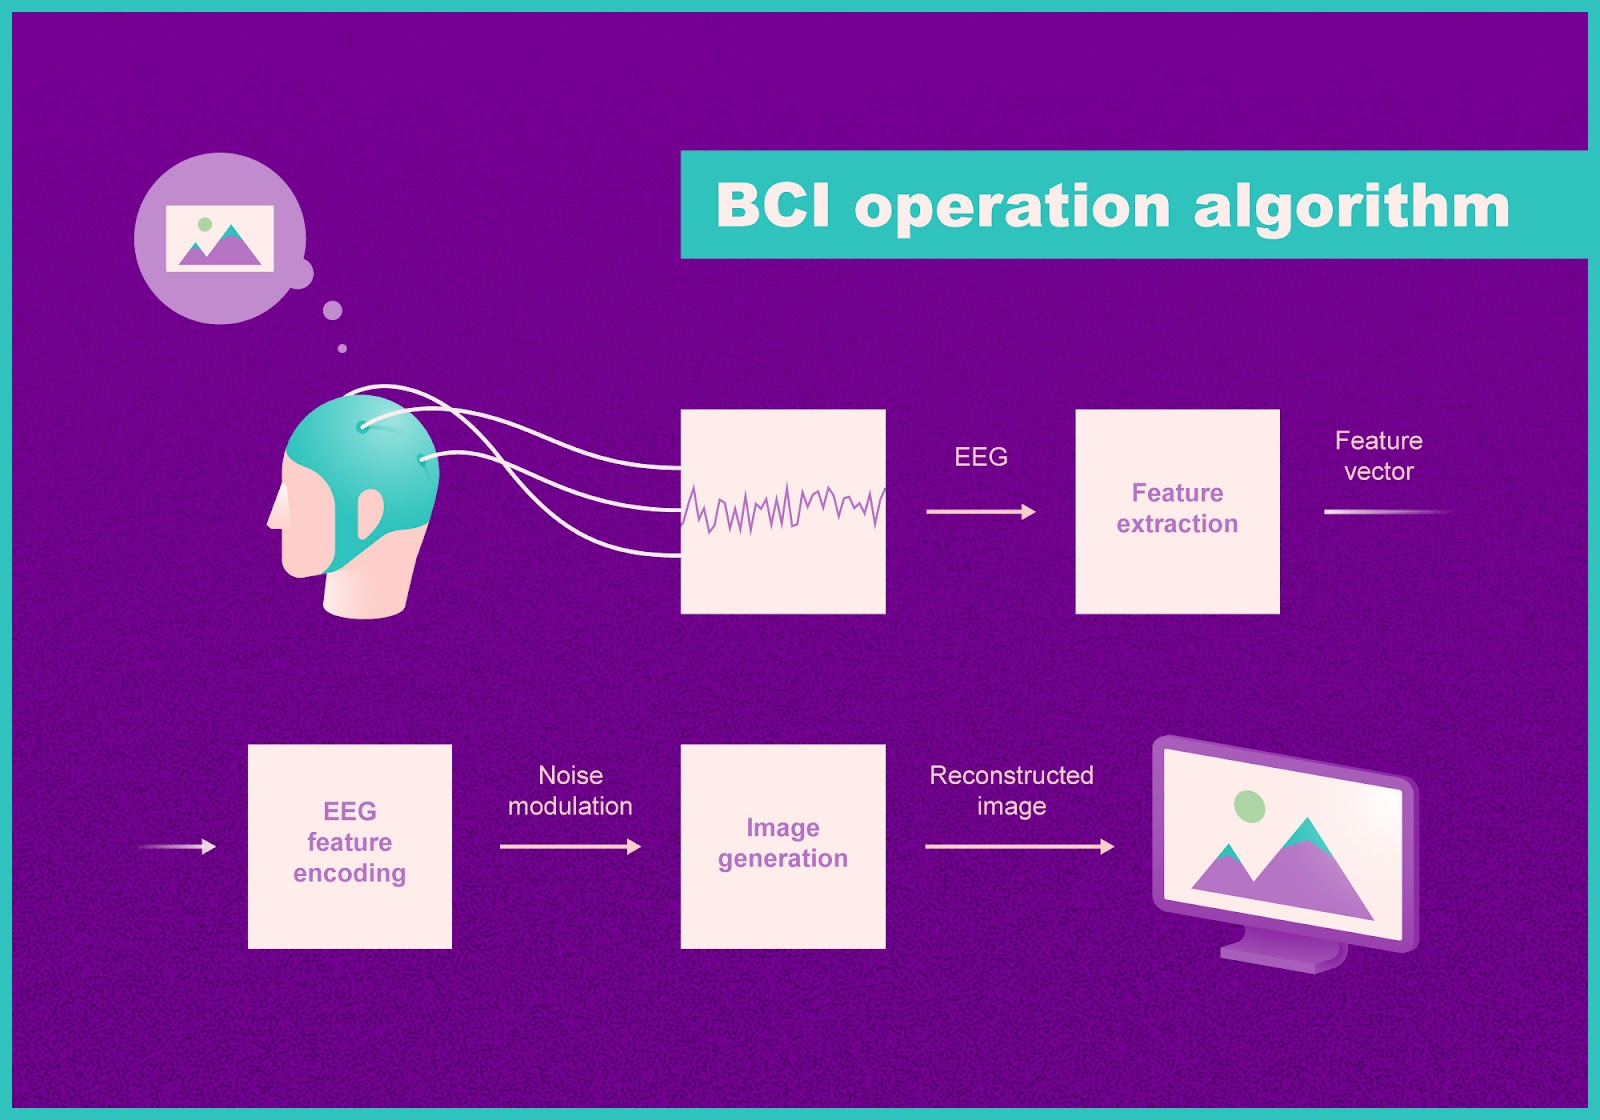 Operation algorithm of the brain-computer interface (BCI) system